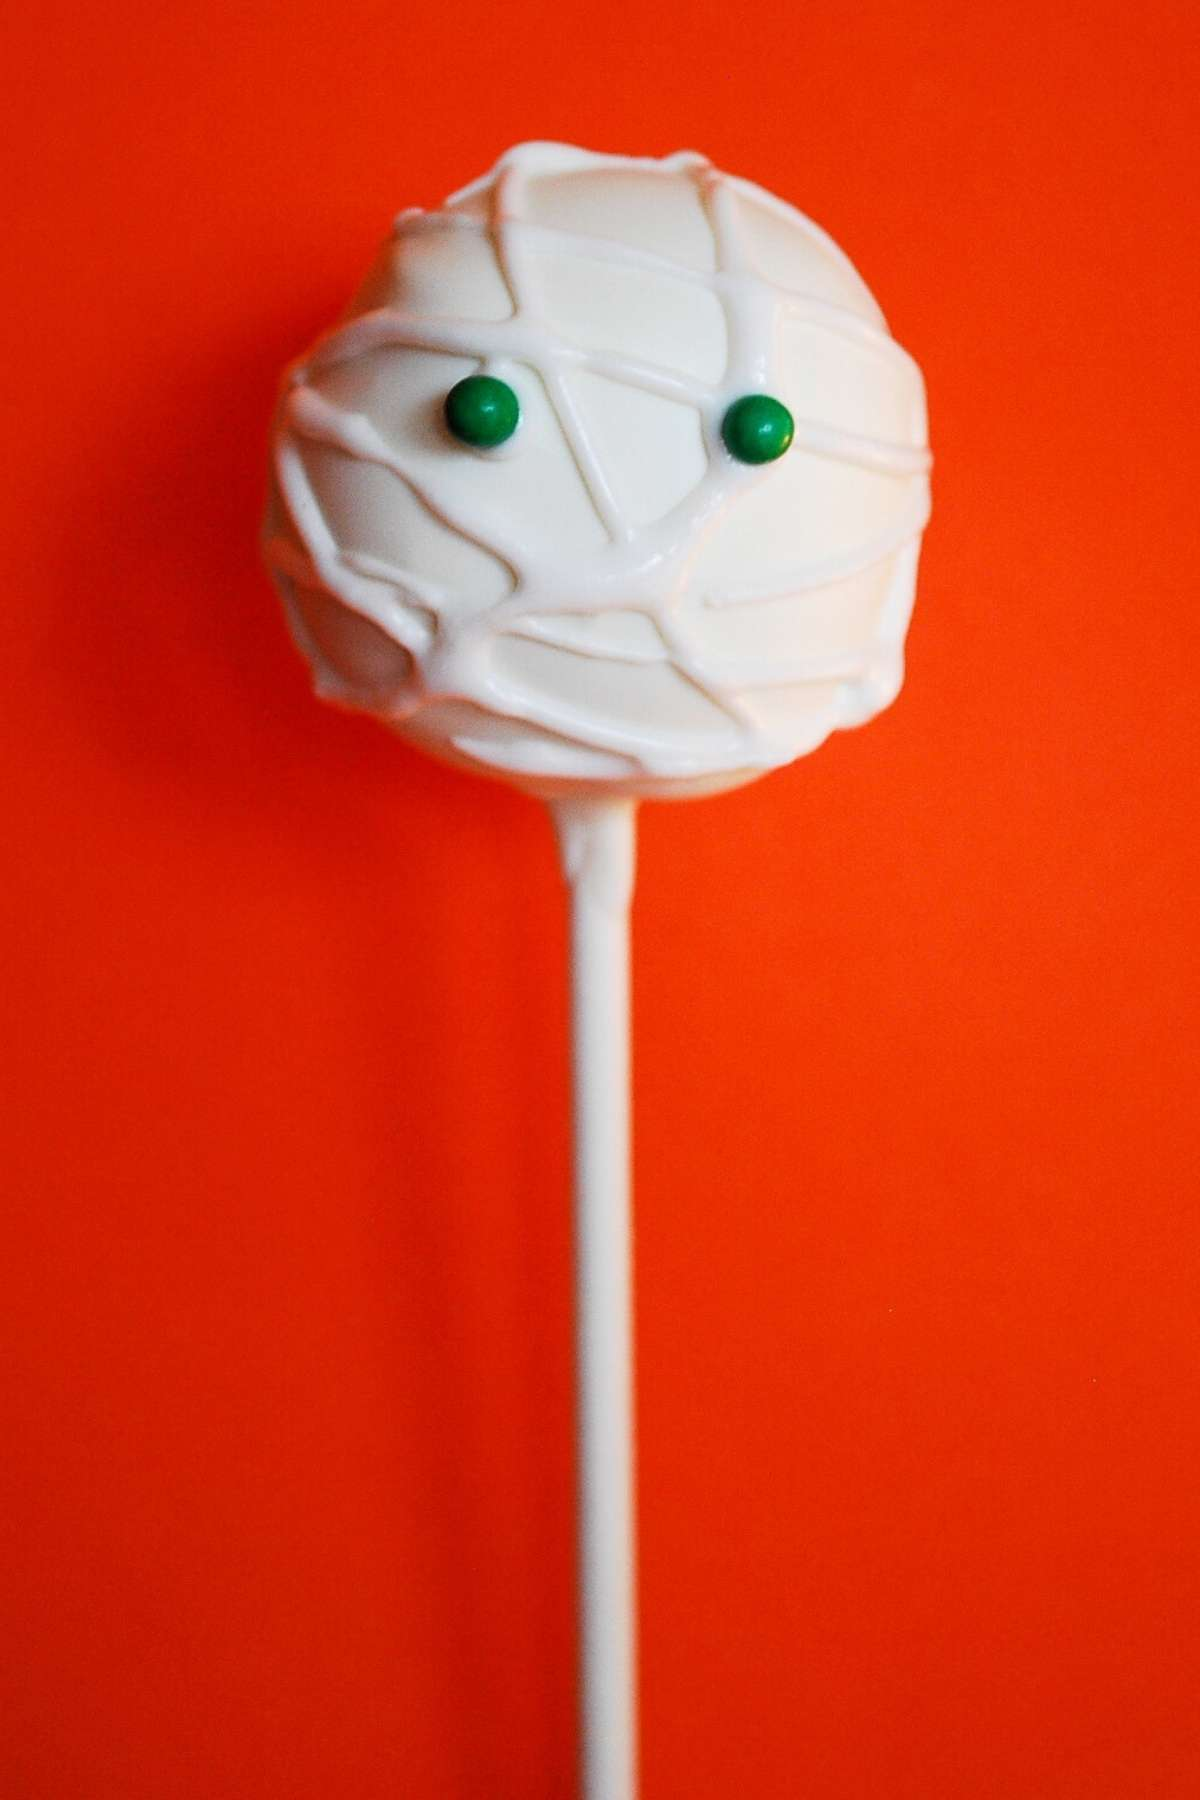 a mummy cake pop with green candy eyes